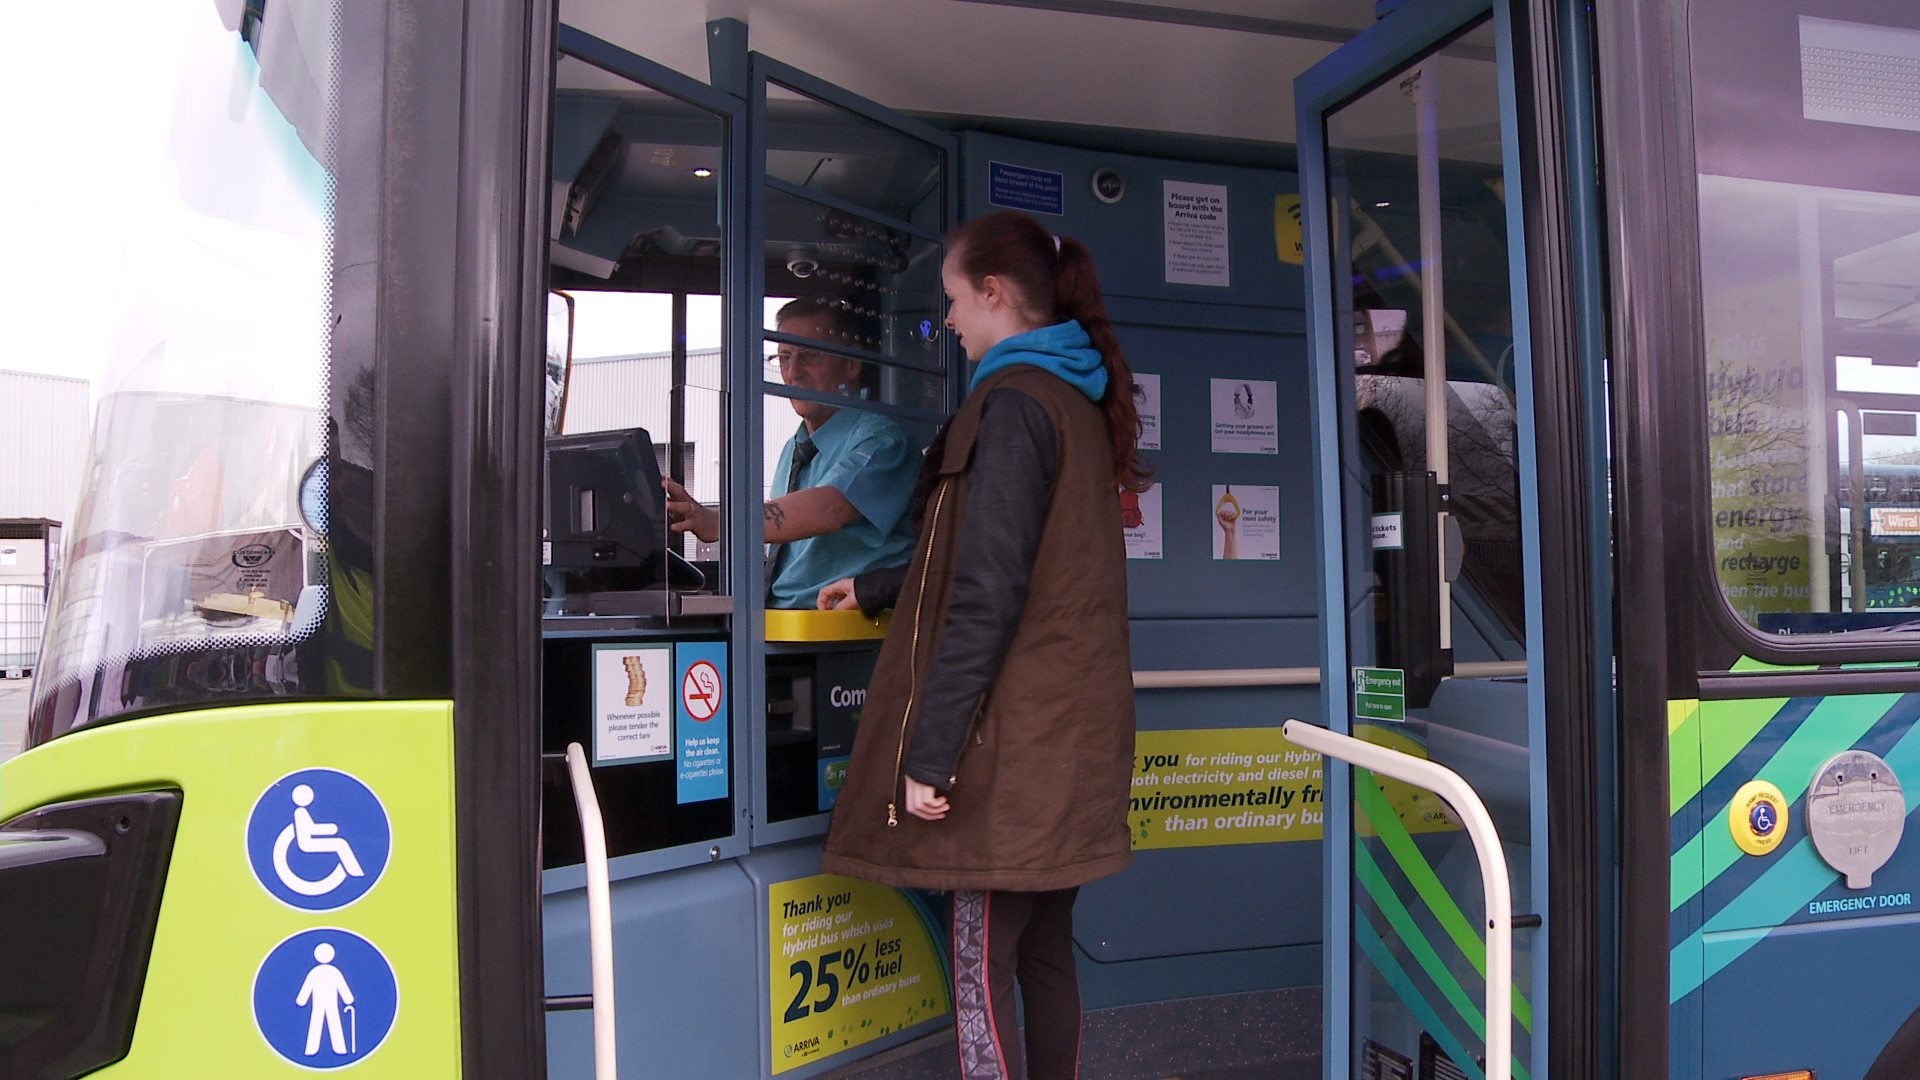 Courtney boarding a bus